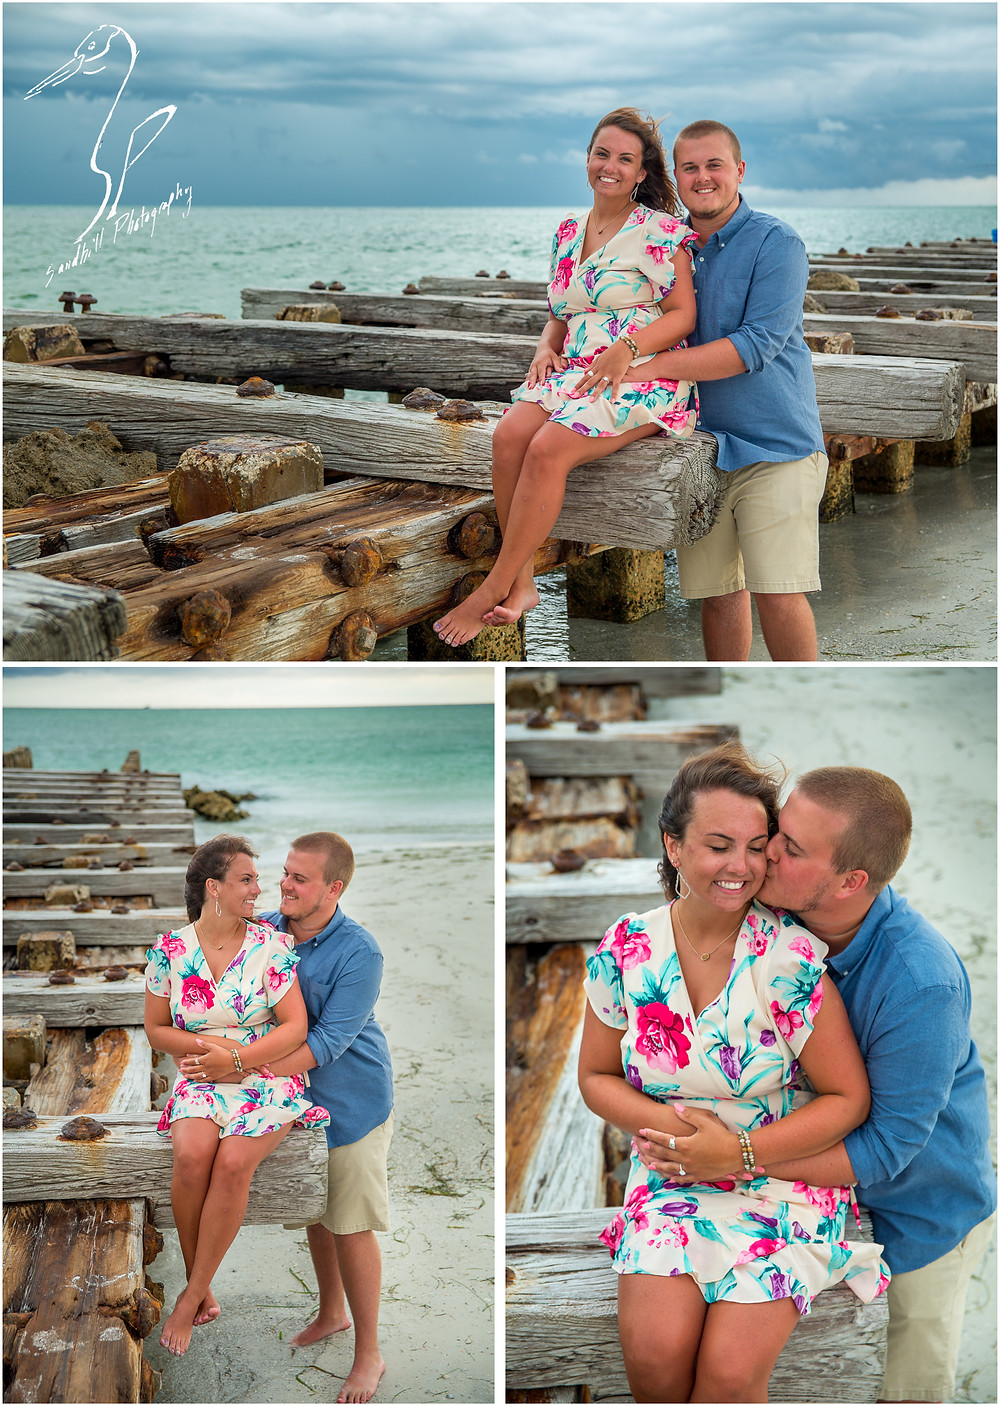 Bradenton Beach Engagement Photography, newly engaged couple sitting on a jetty and smiling